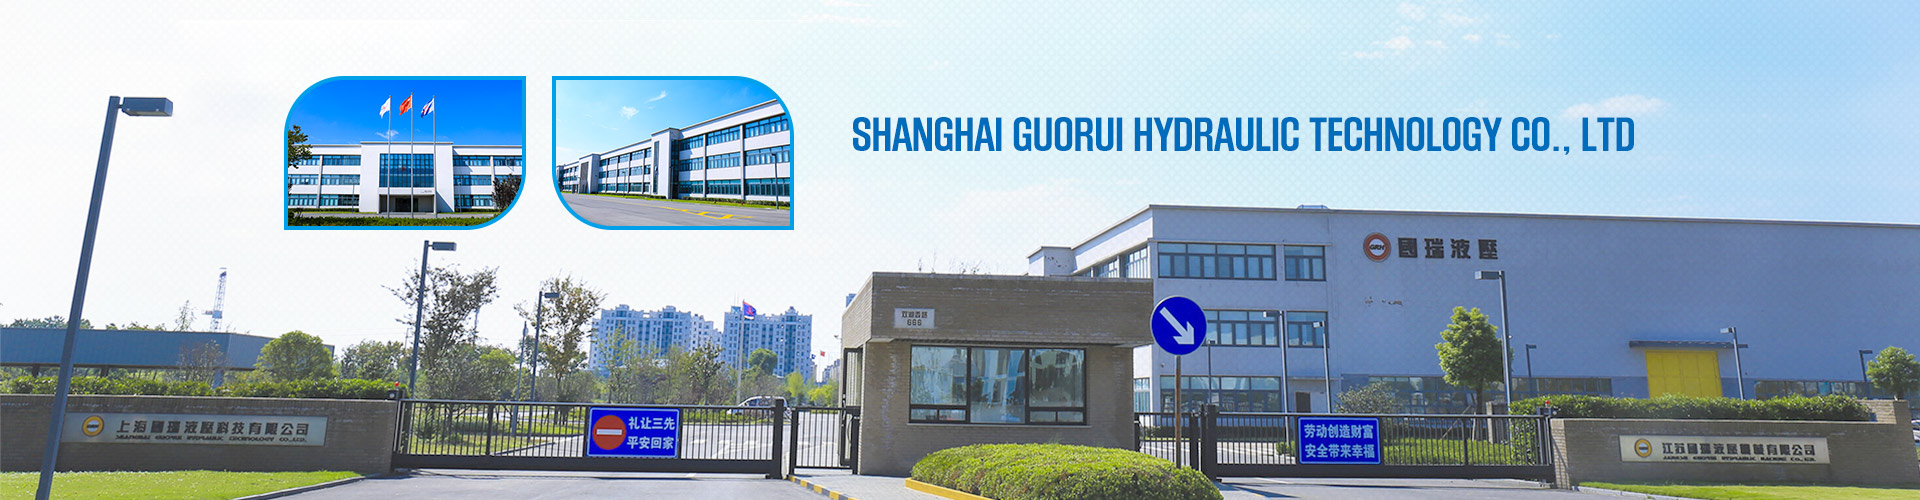 Shanghai Guorui Hidráulica Technology Co., Ltd